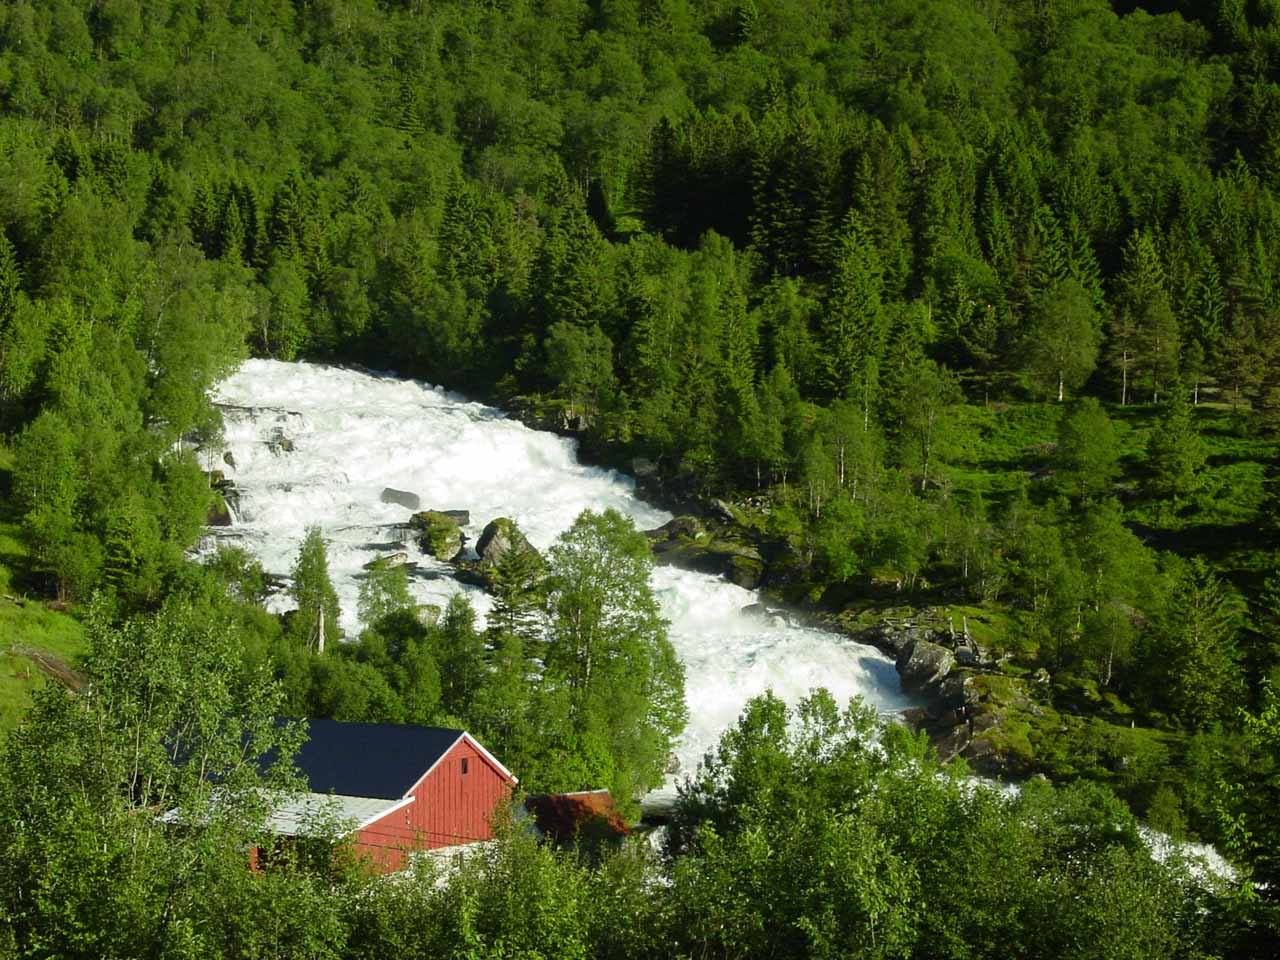 Although Vallestadfossen on its own seemed to be nothing more than rapids, there's something to be said about how idyllic it looked with the red farm surrounded by forest